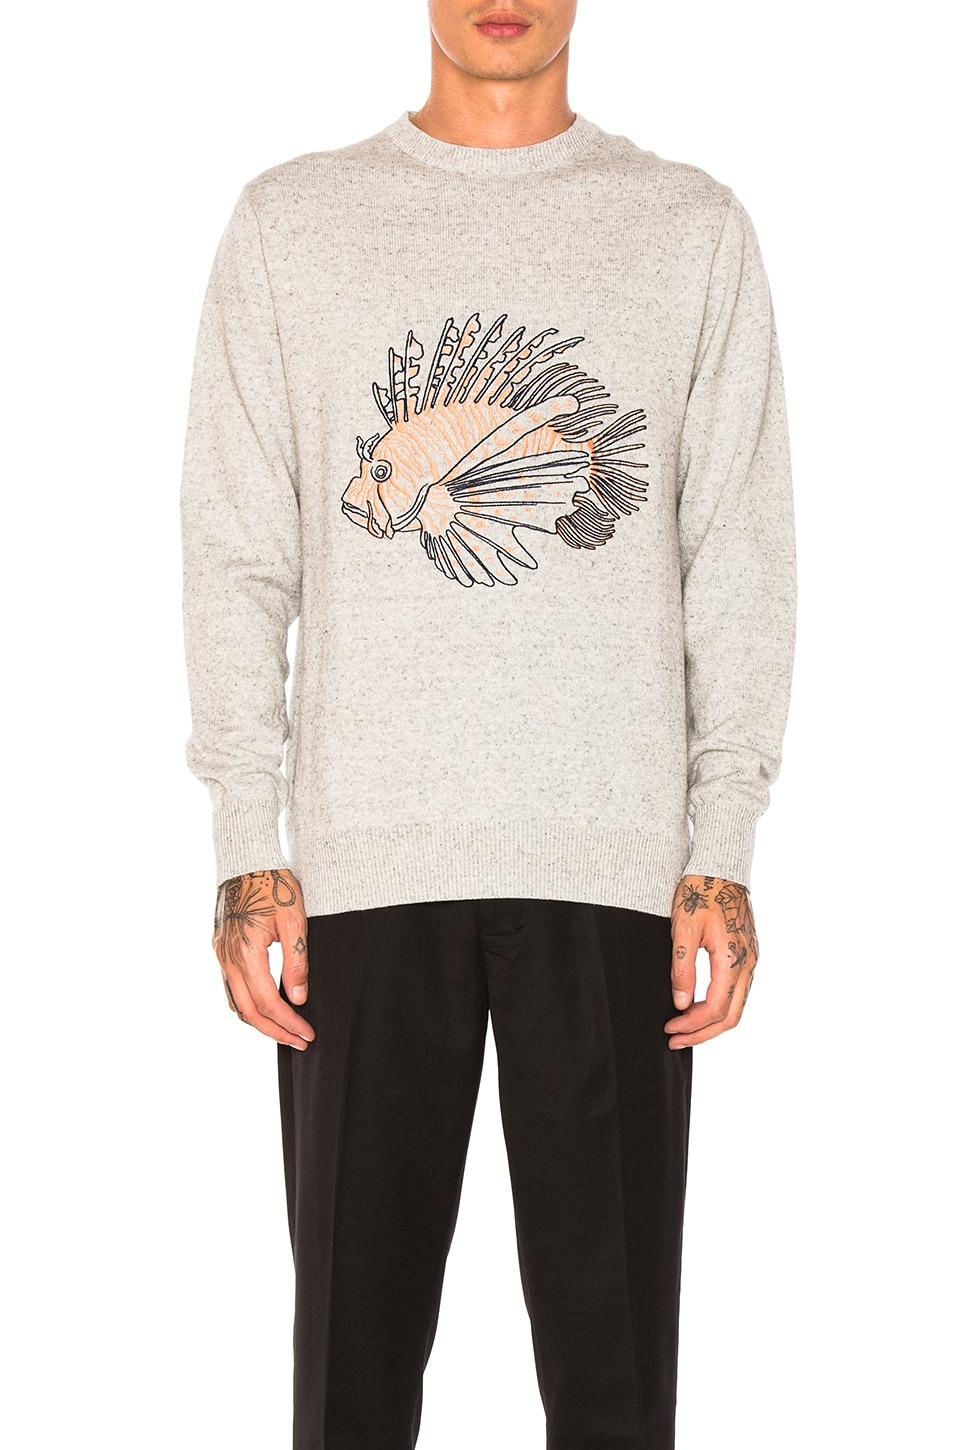 Lion Fish Knit Pullover by Barney Cools